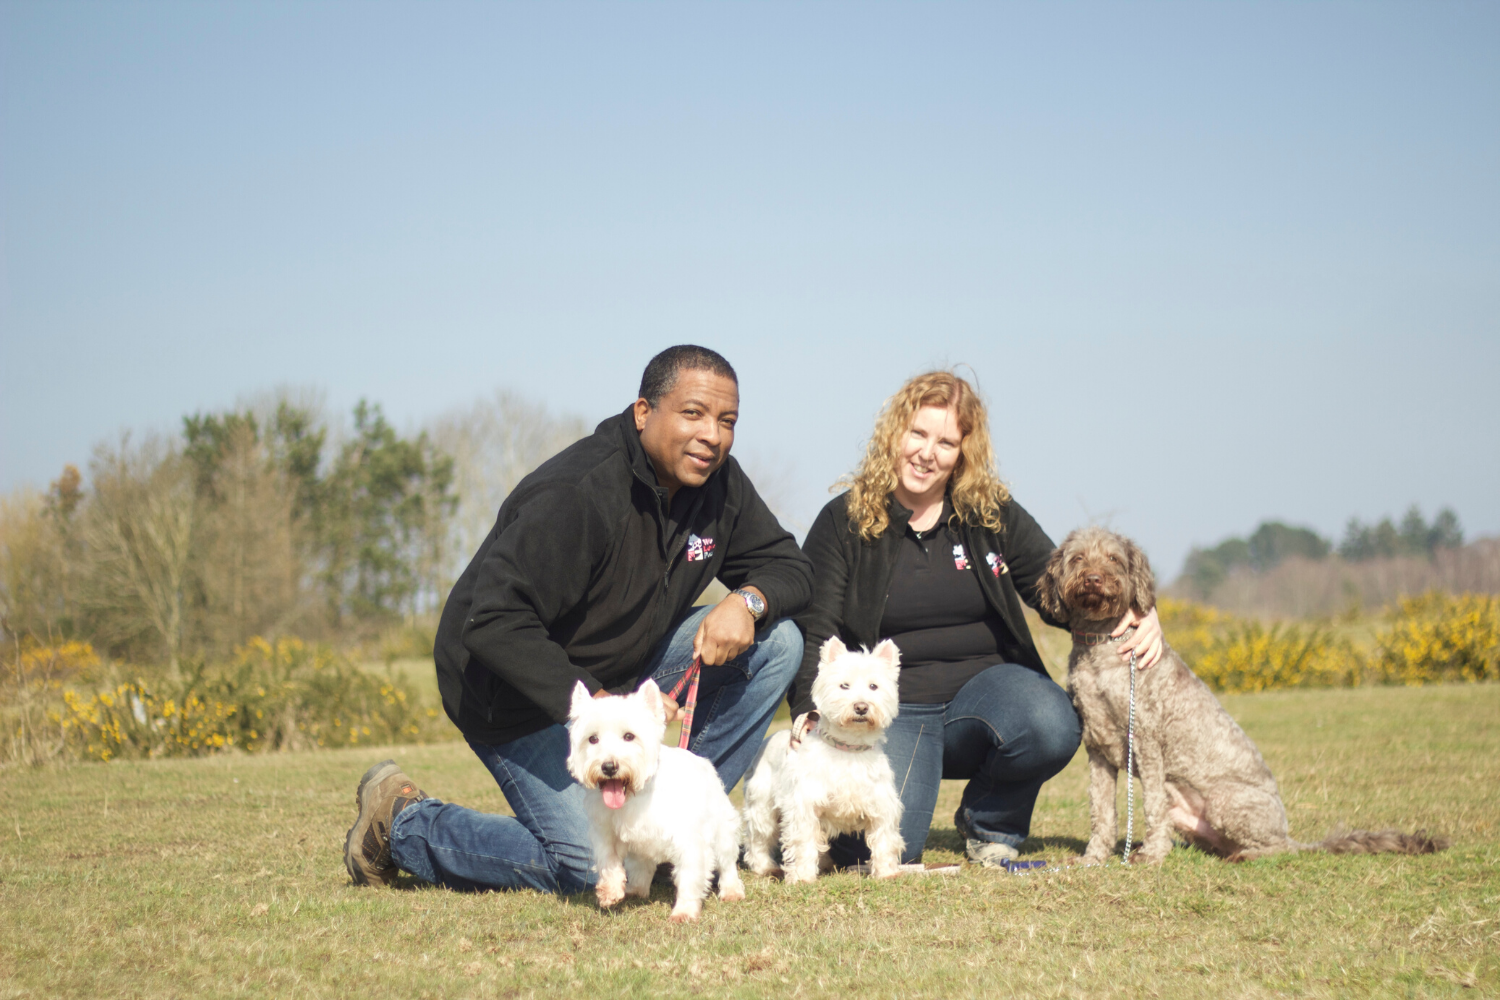 5 star licensed and insured dog walkers and pet sitters in Didcot. Your pet deserves the best!